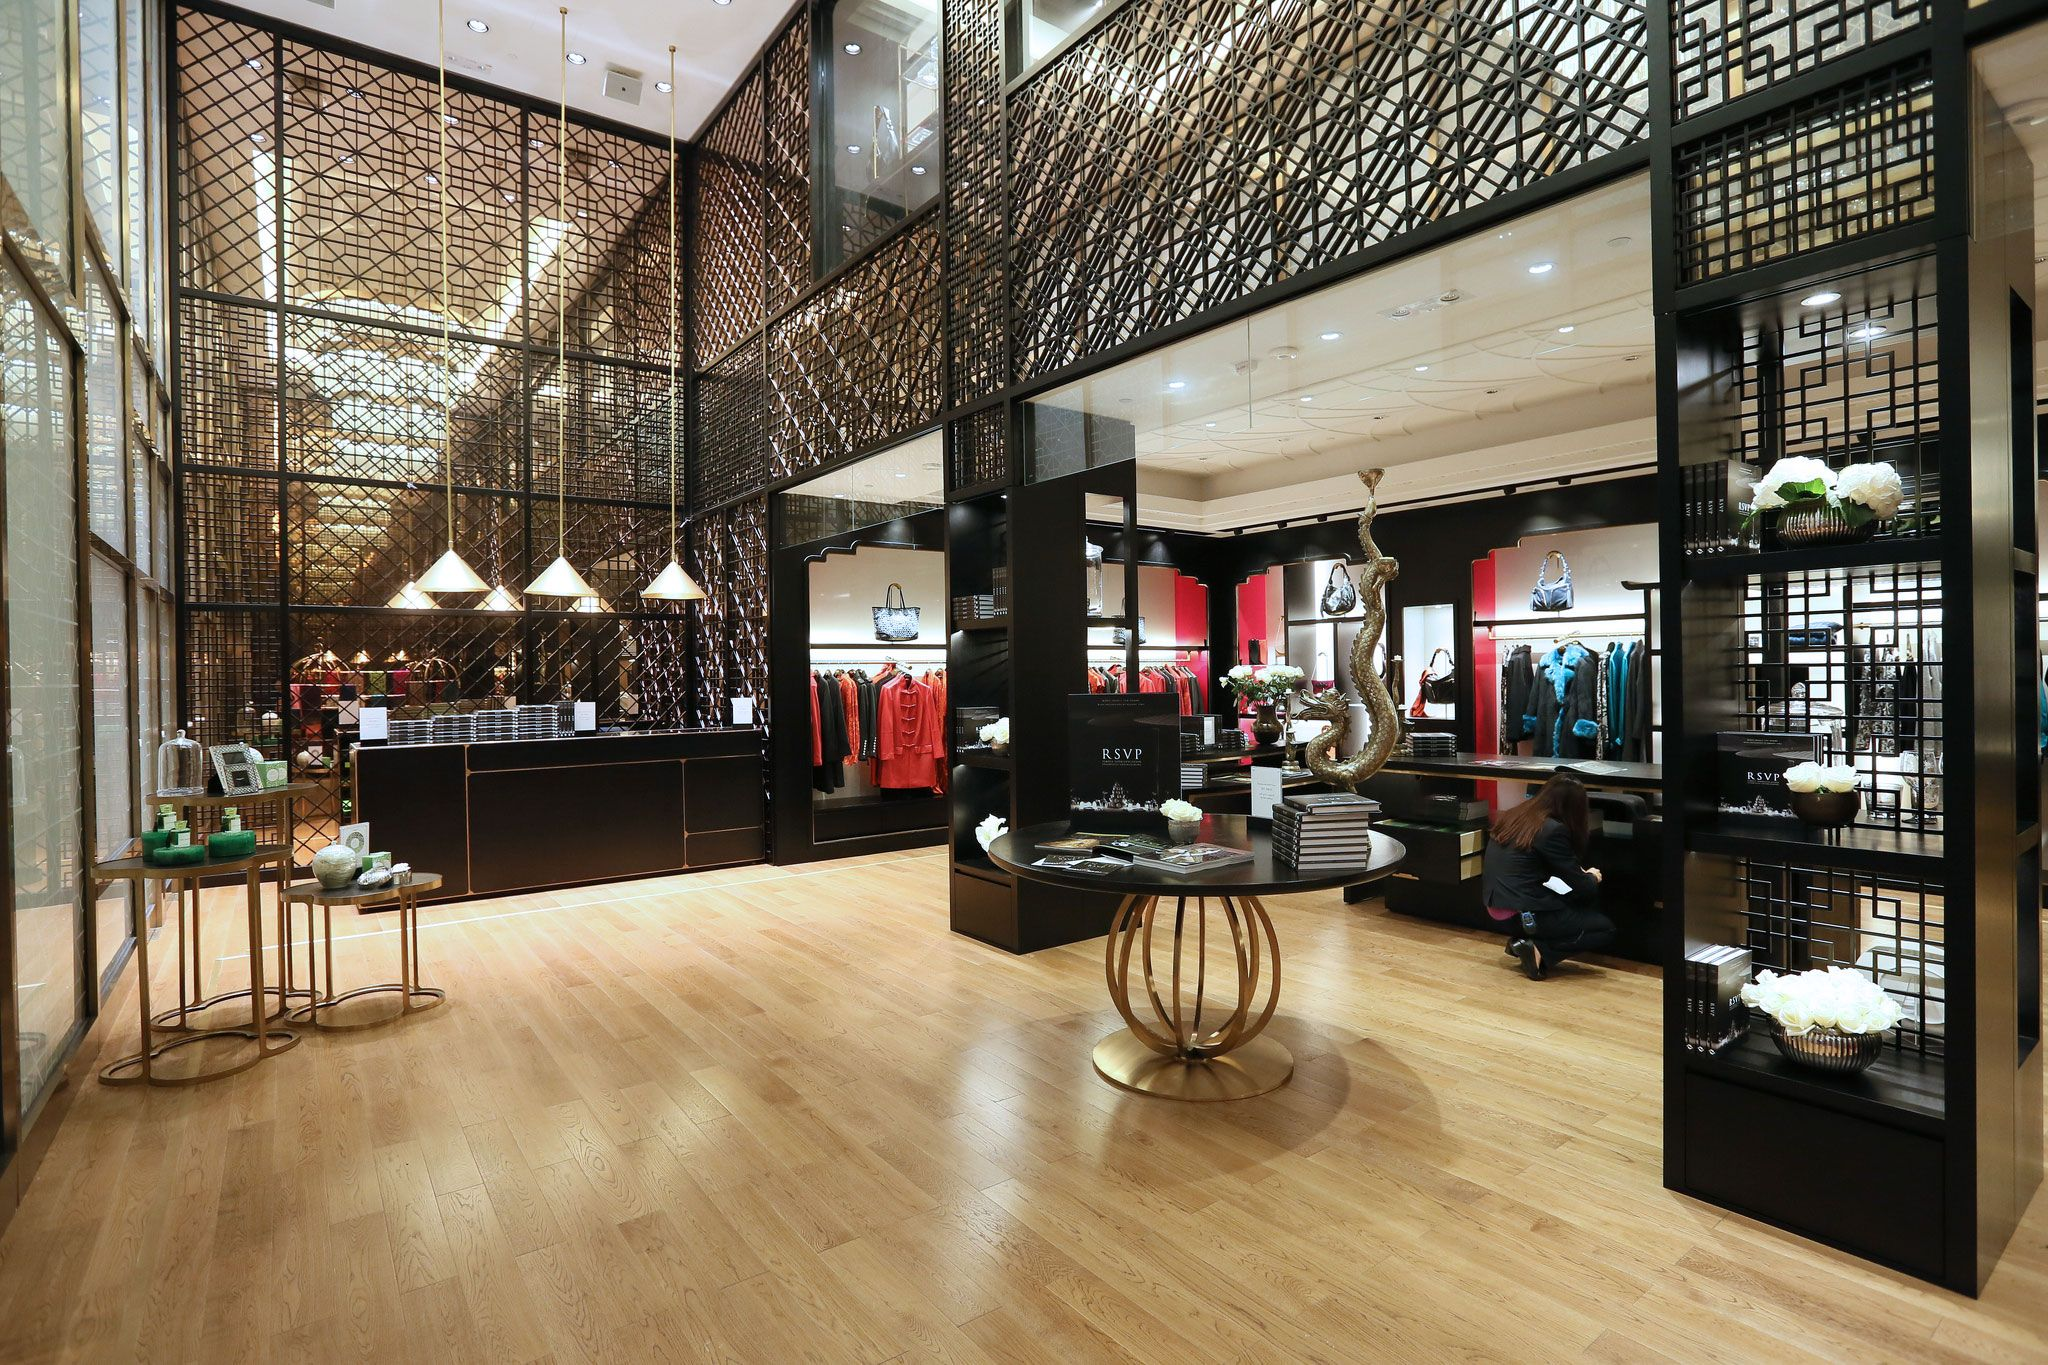 Shanghai tang shanghai tang retail design and retail for Interior design department